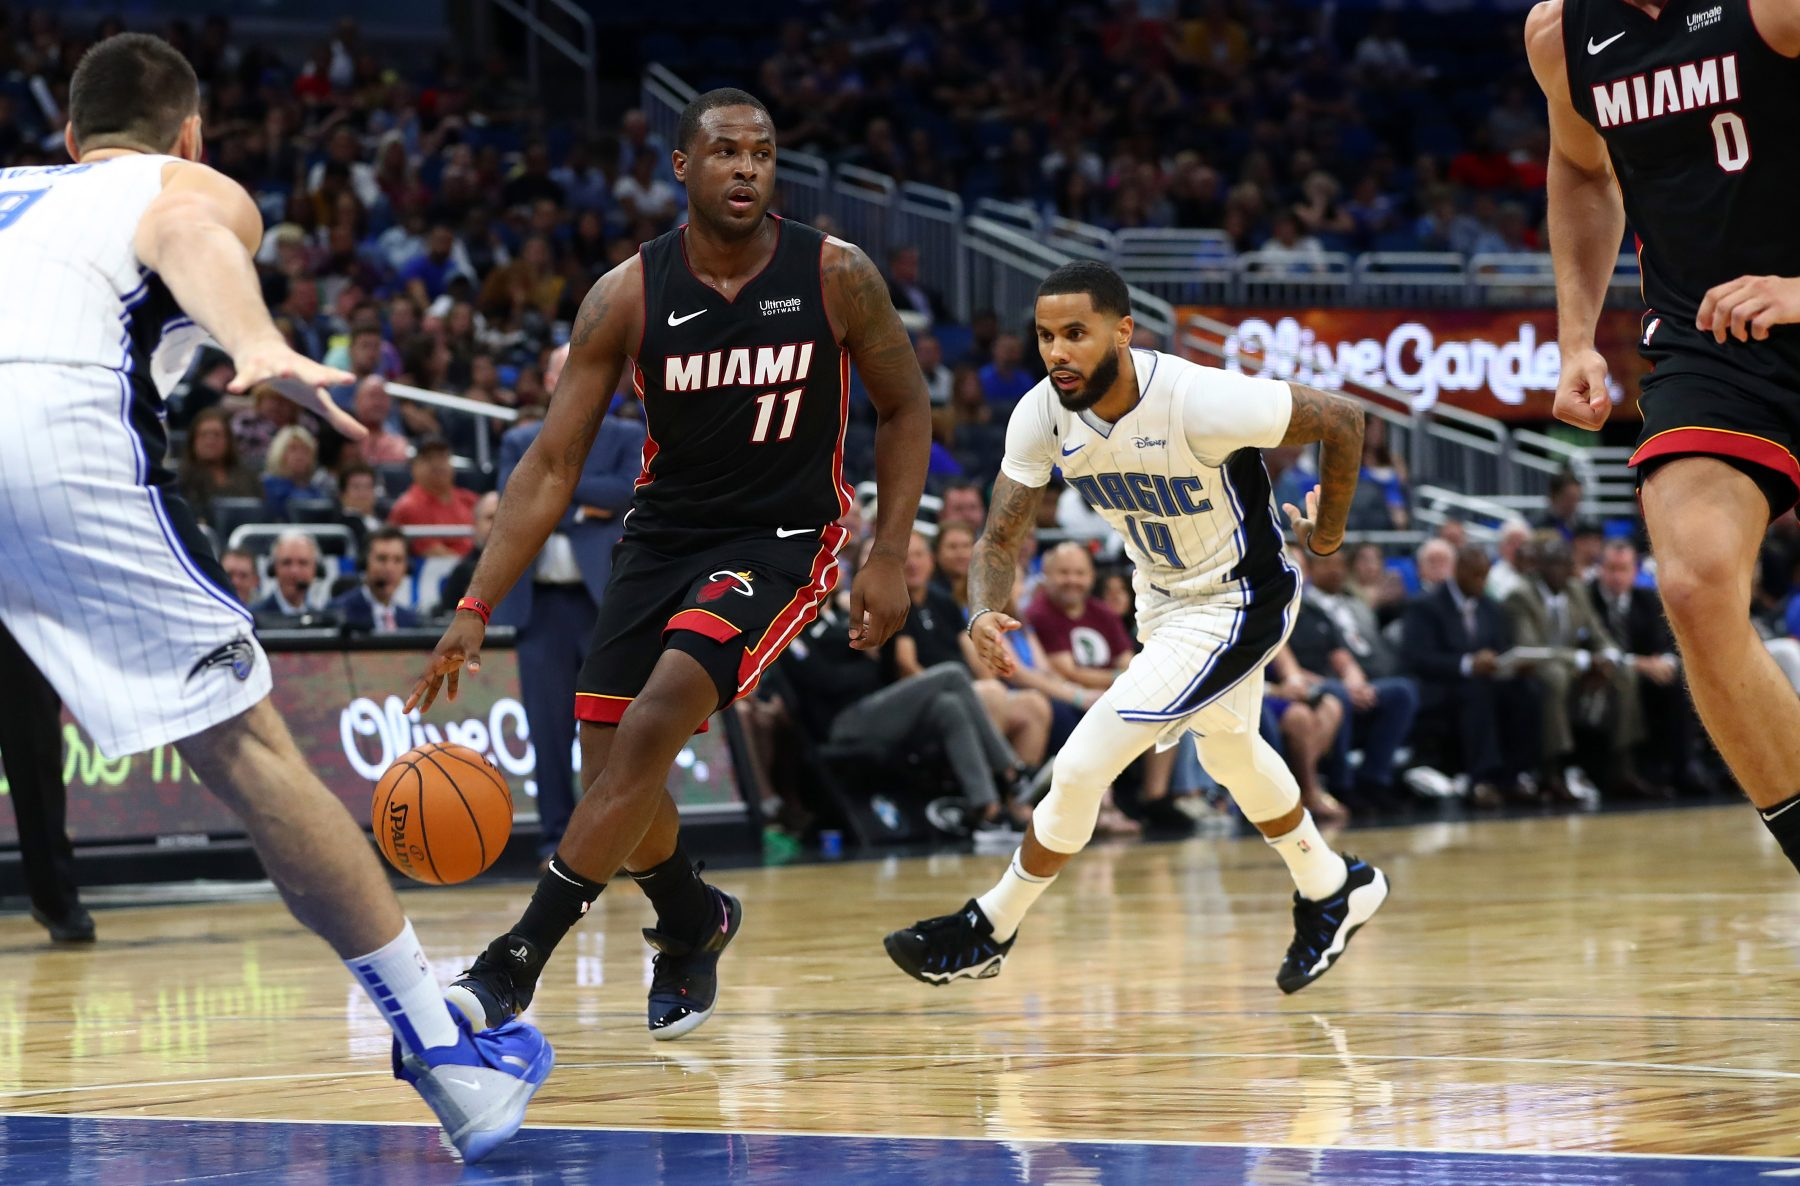 Heat suspend Waiters 1 game for 'unprofessional conduct'